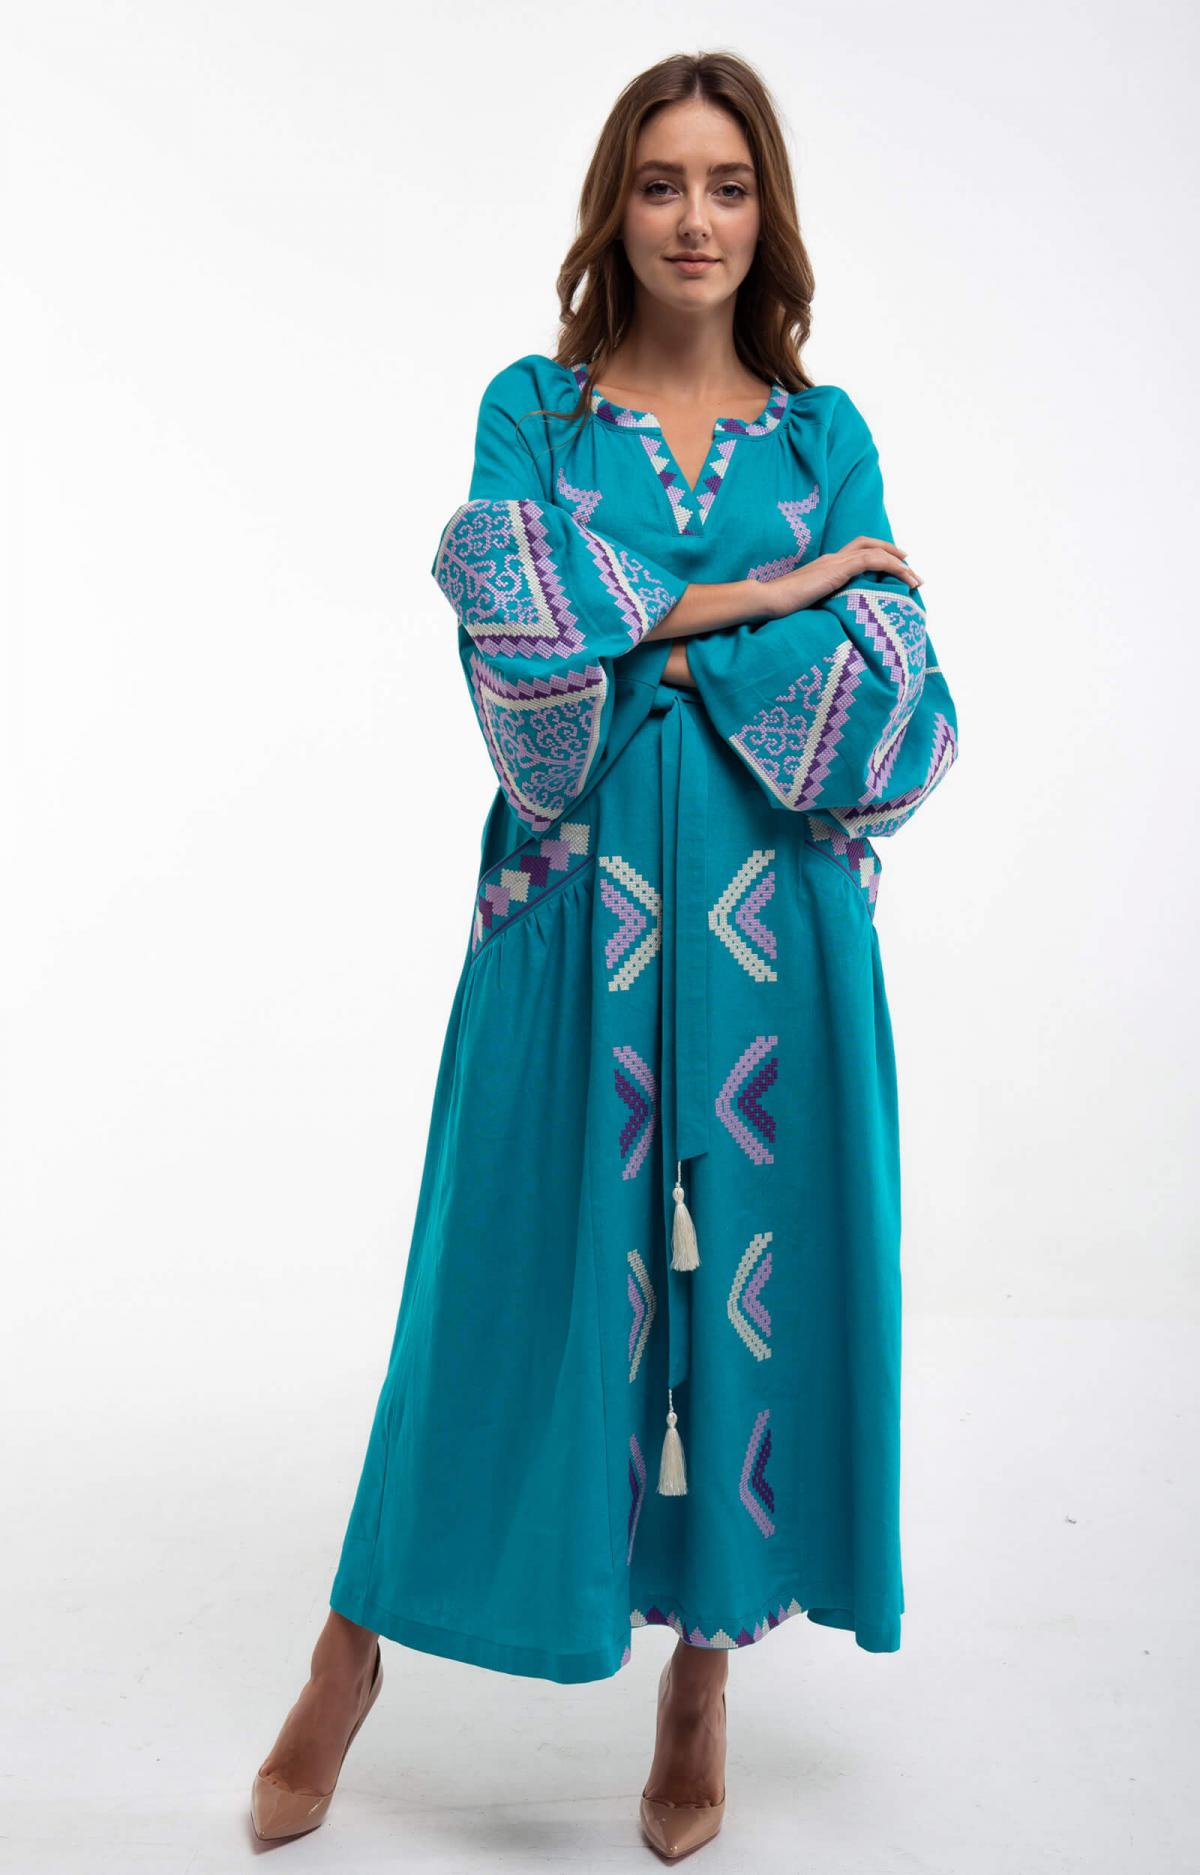 Embroidered long dress of turquoise color. Photo №1. | Narodnyi dim Ukraine